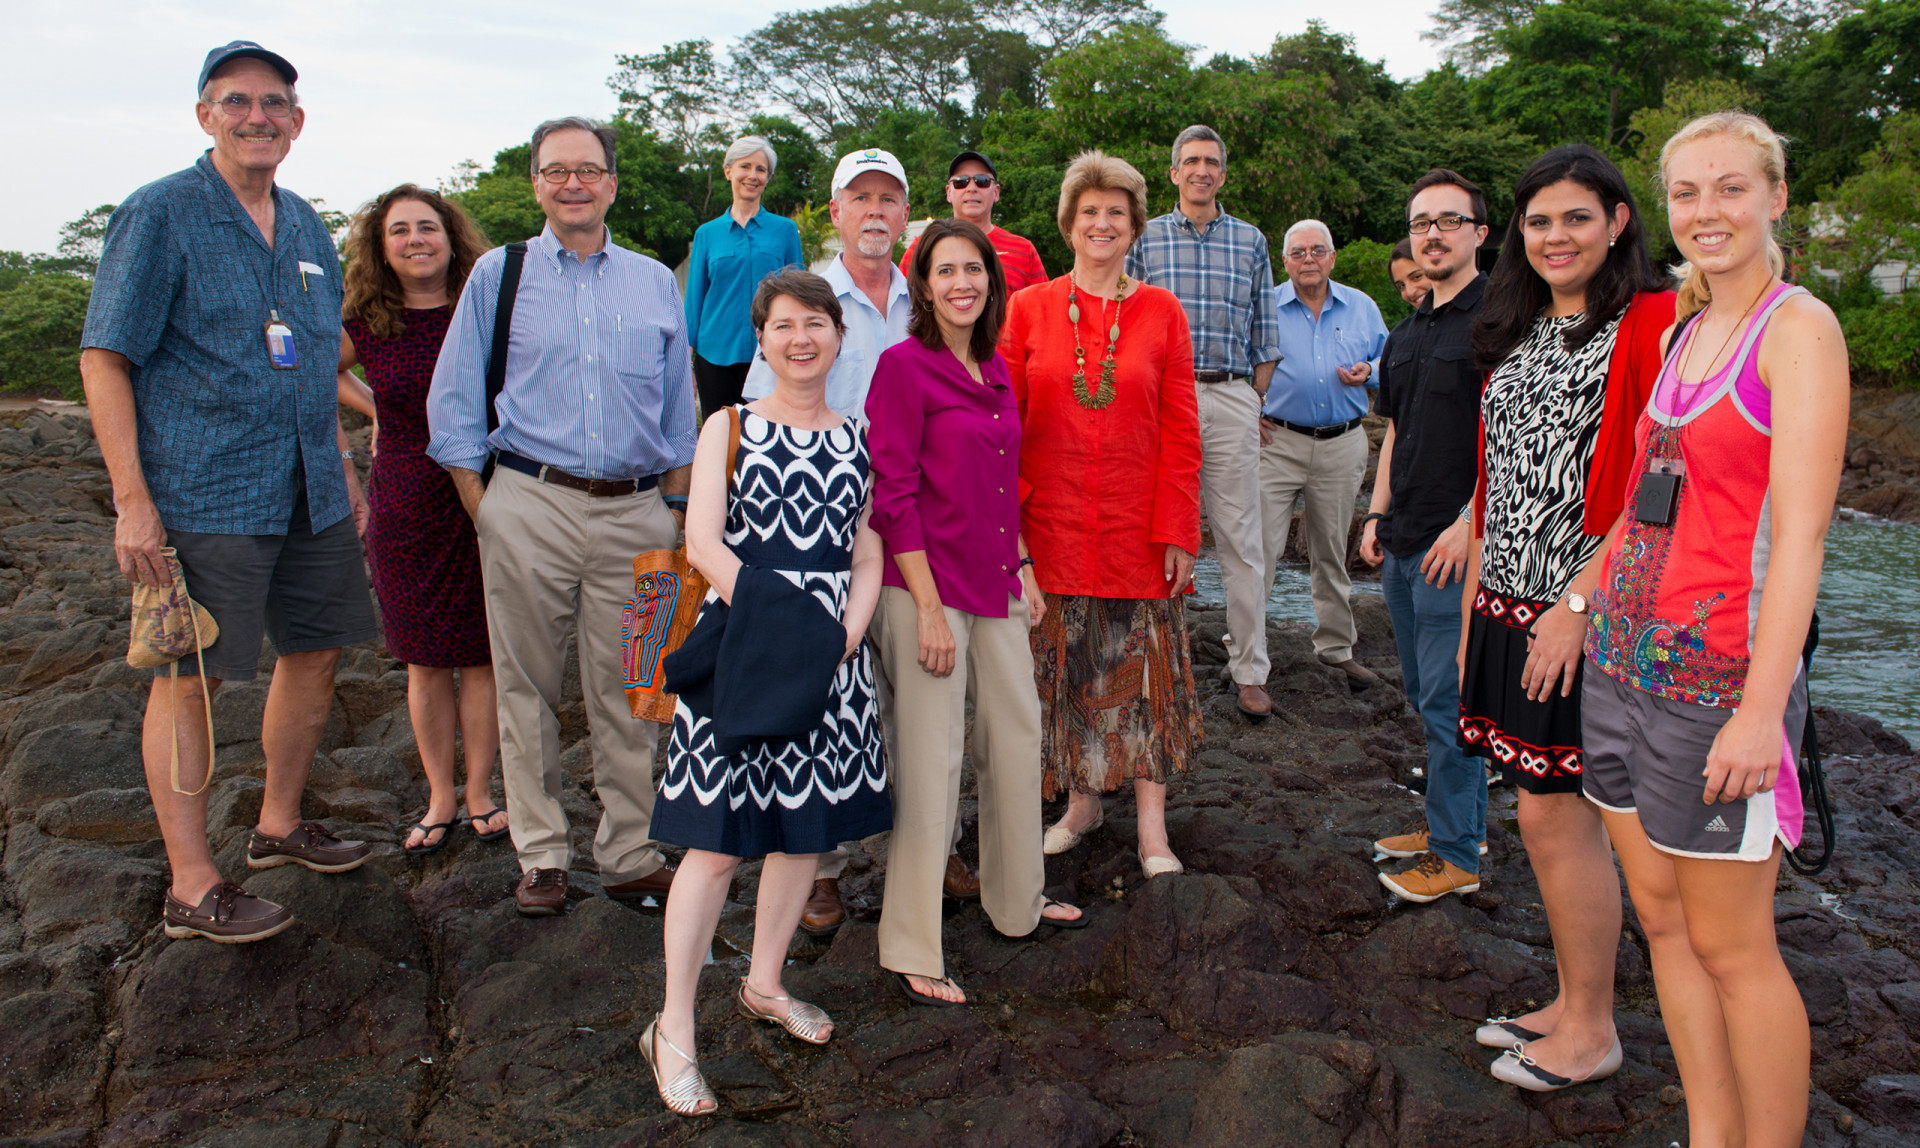 Members of STRI's Advisory Board, the Fundación Smithsonian and scientists meet at the Punta Culebra Nature Center